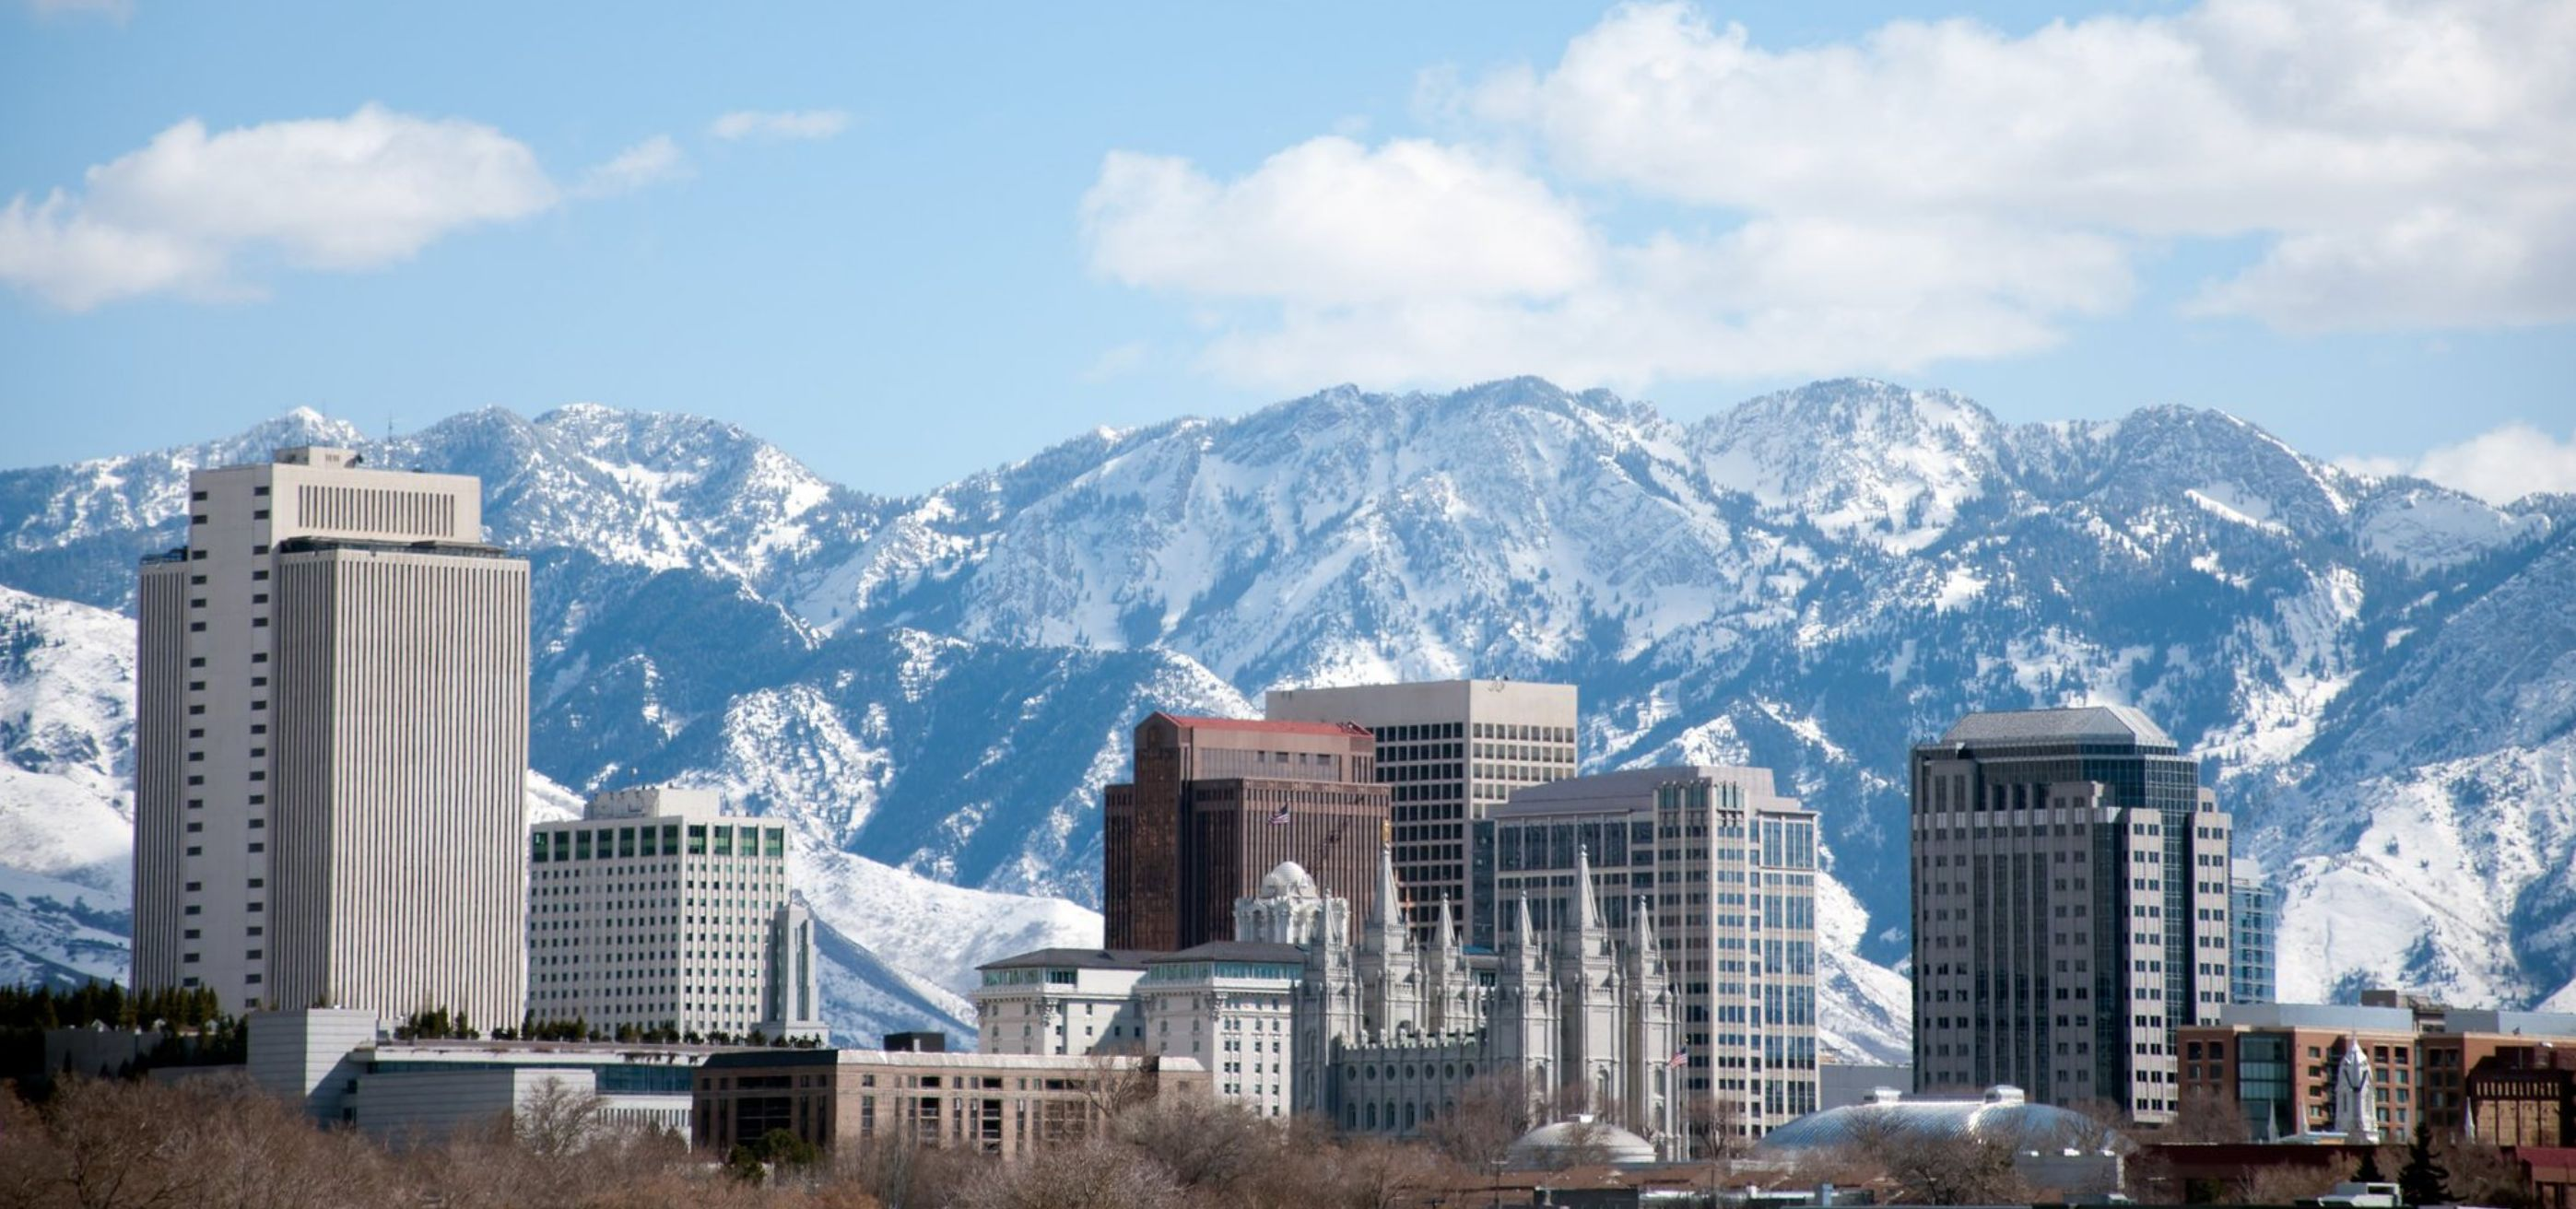 Utah Transit Authority Investor Relations - photo 6